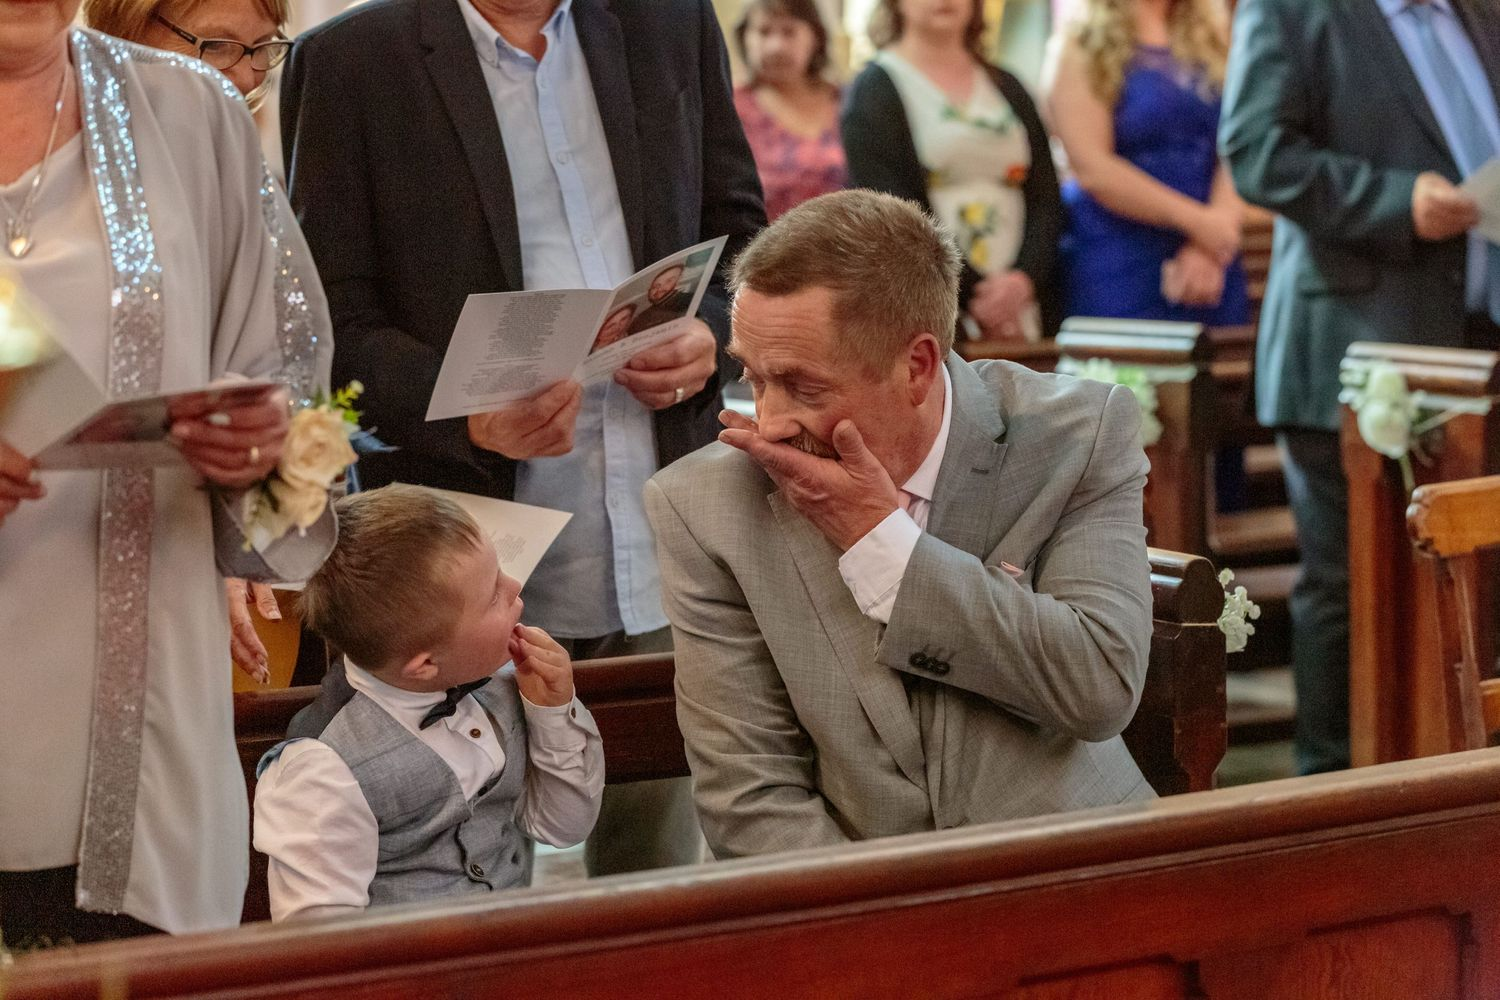 wedding guests keeps the couples young son entertained in church putting their hands over their mouths